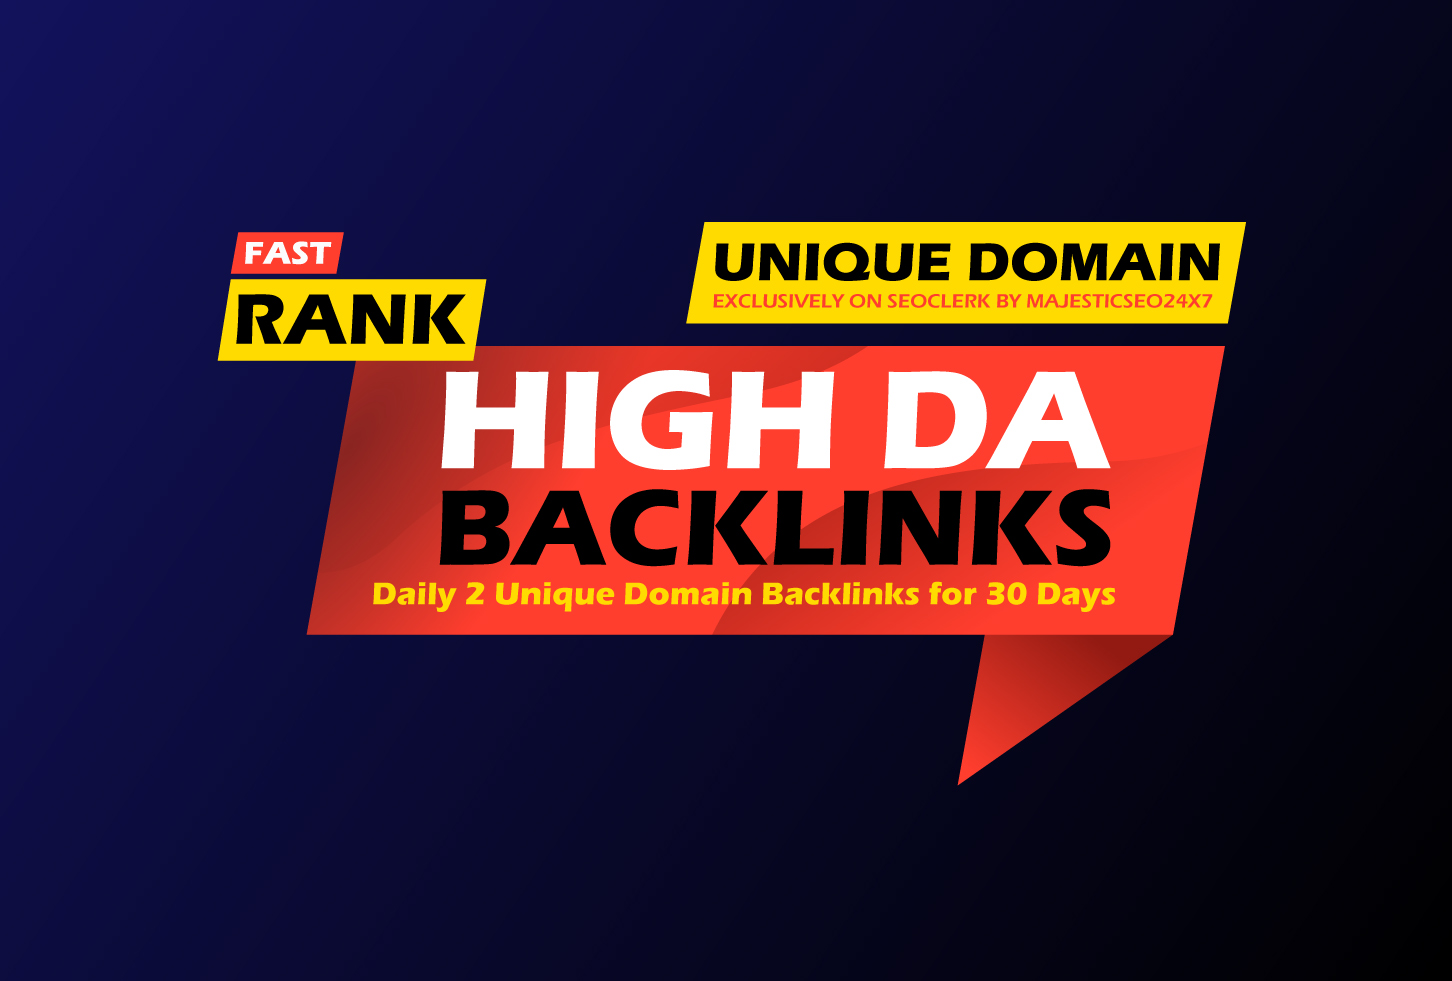 30 days drip feed daily 2 unique high da backlinks for higher ranking